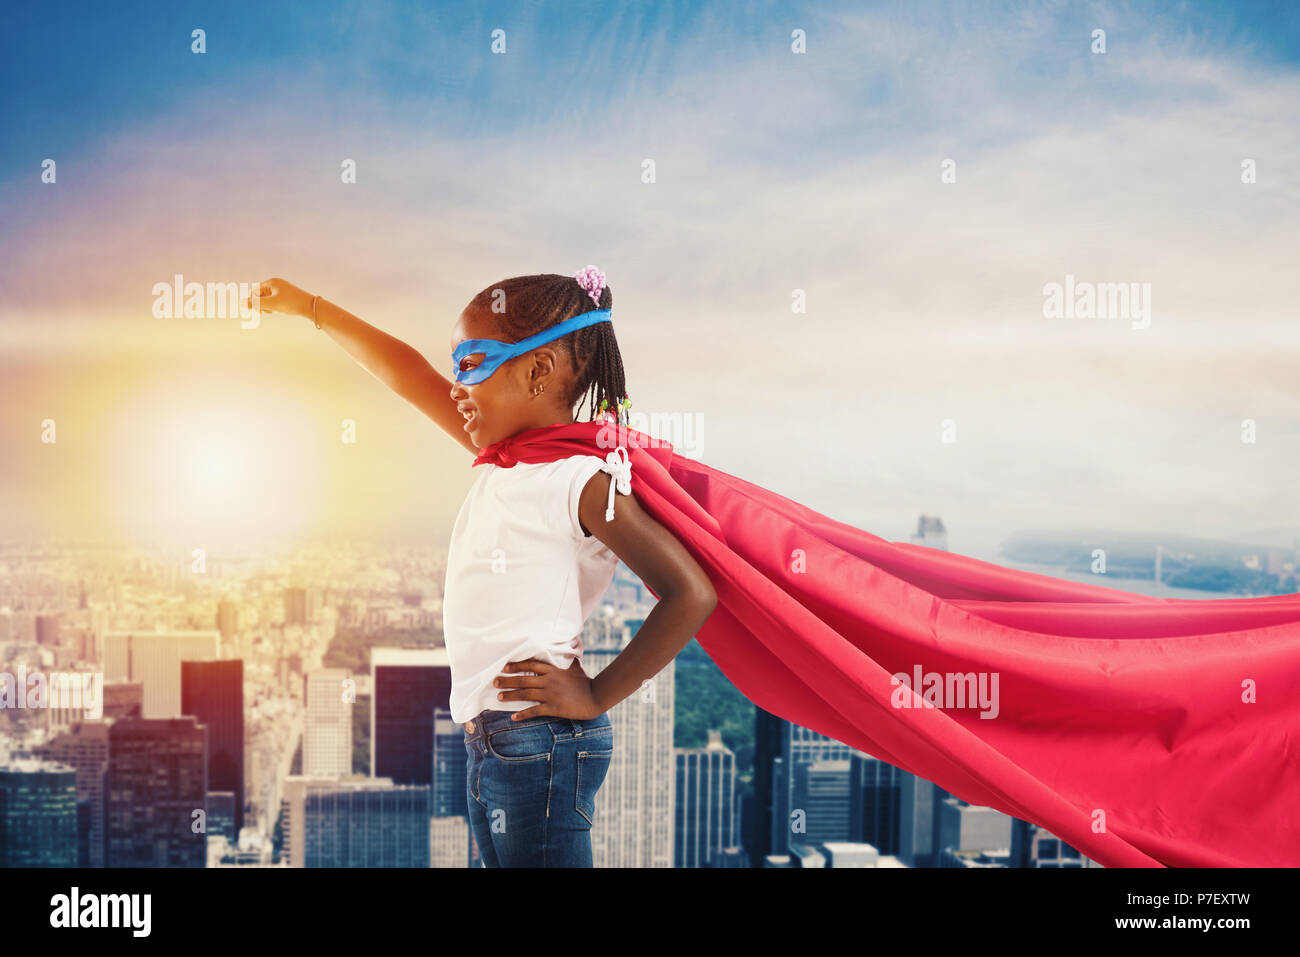 Child acts like a superhero to save the world - Stock Image